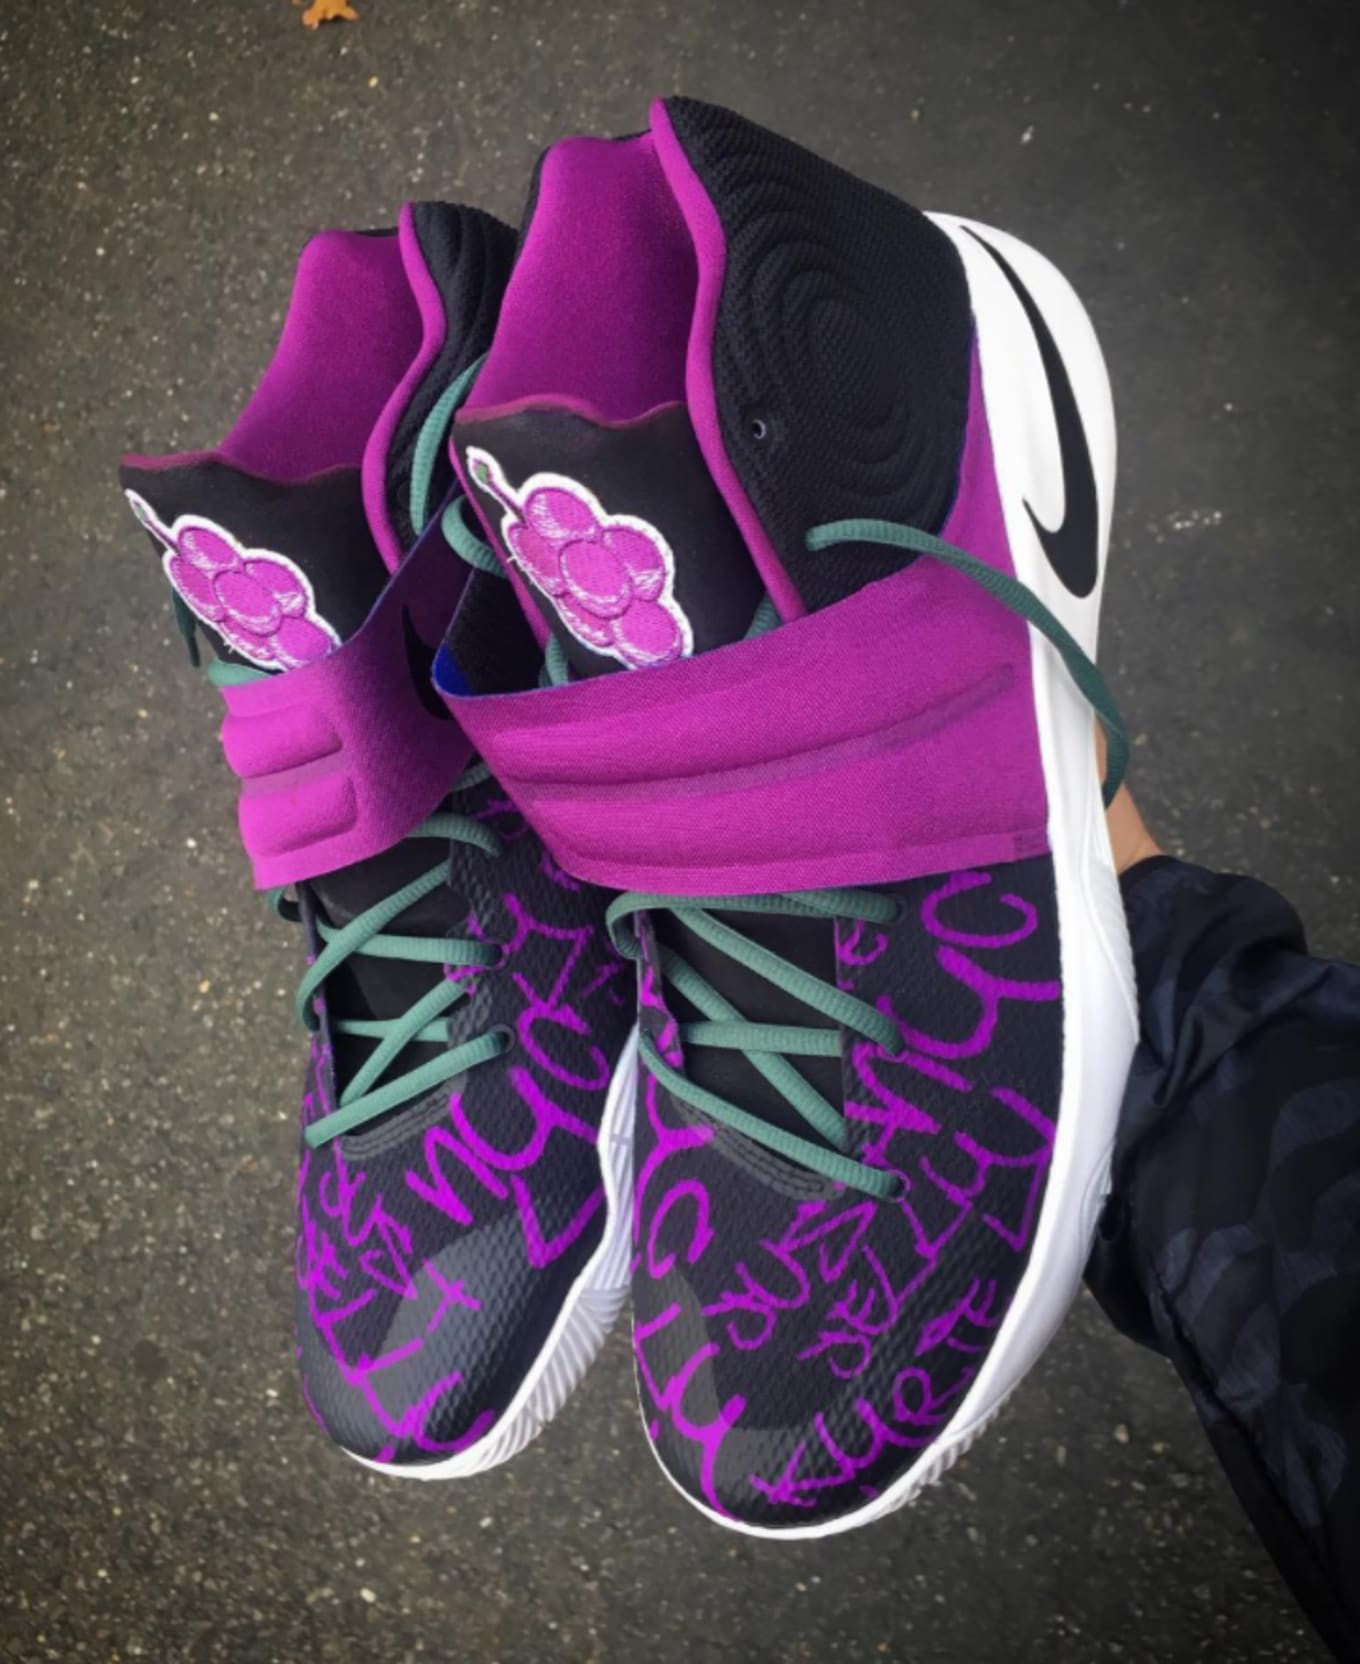 huge selection of a2e66 8d86d Kyrie Irving Gets Grape Jelly-Flavored Sneakers. A custom pair from Mache.